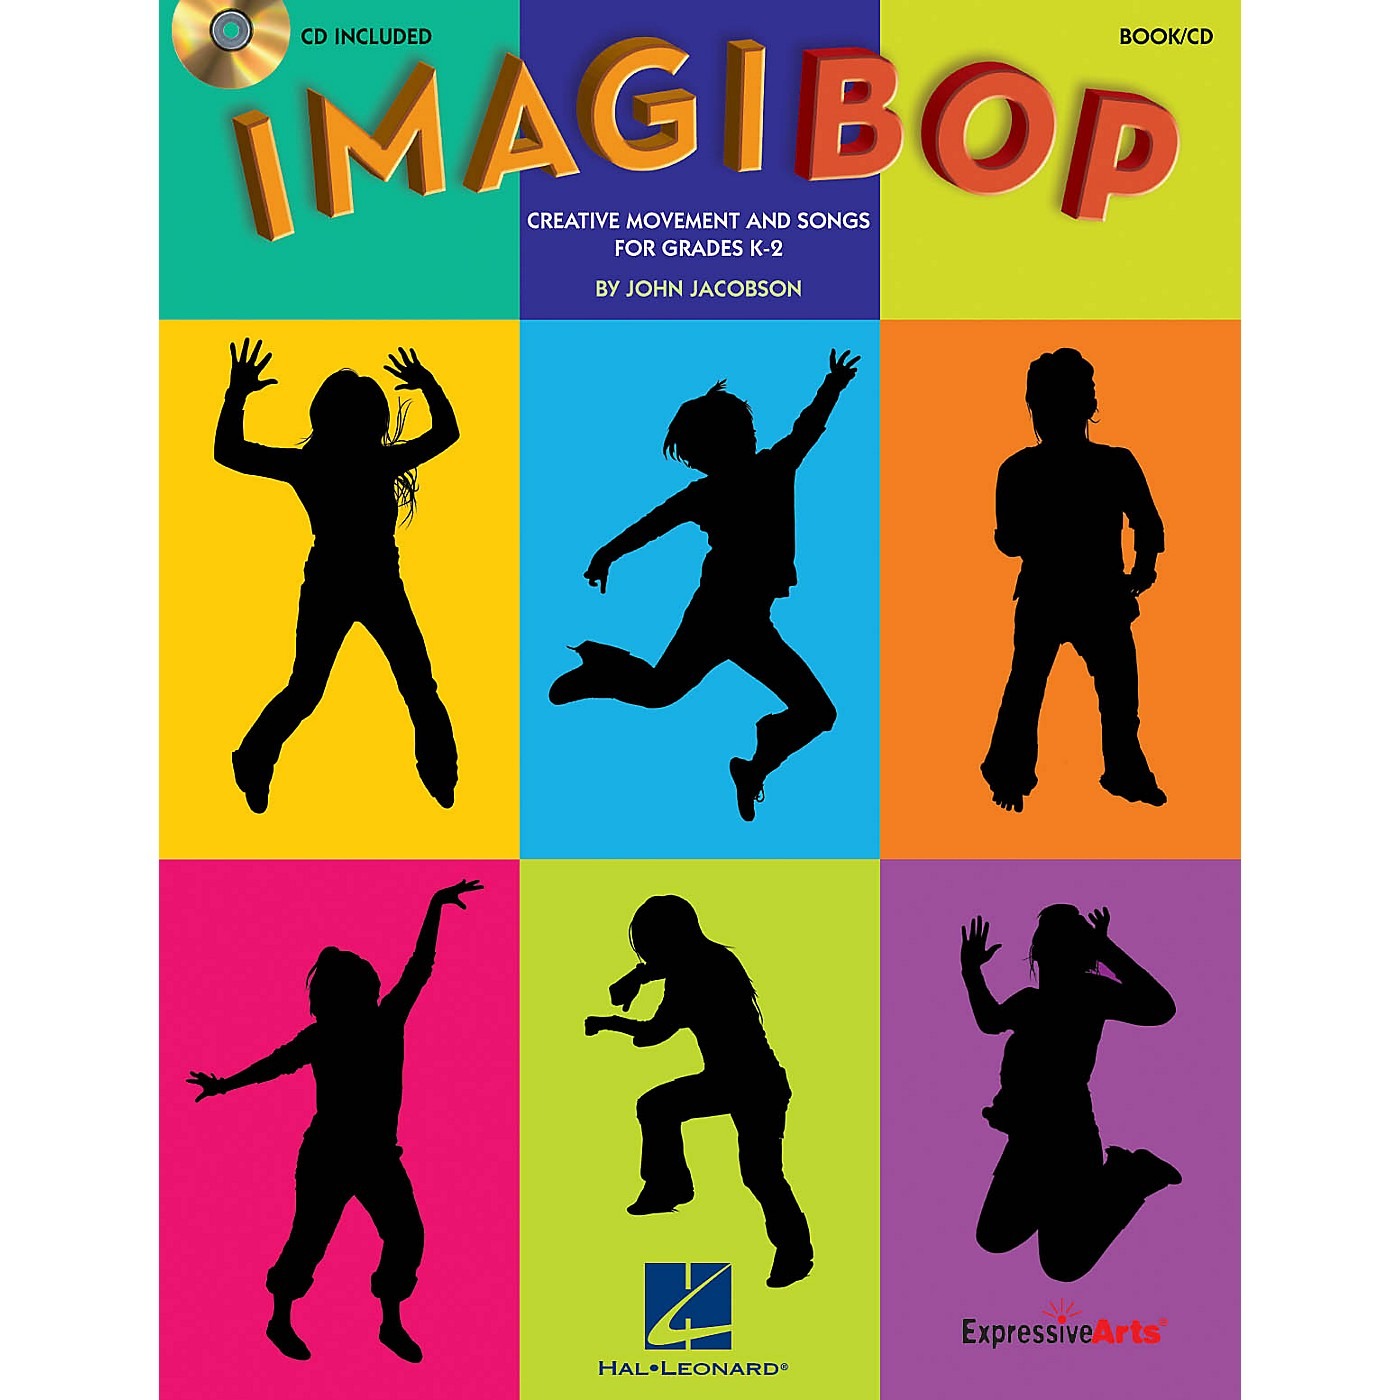 Hal Leonard ImagiBOP (Creative Movement and Songs for Grades K-2) Book and CD pak Composed by John Jacobson thumbnail